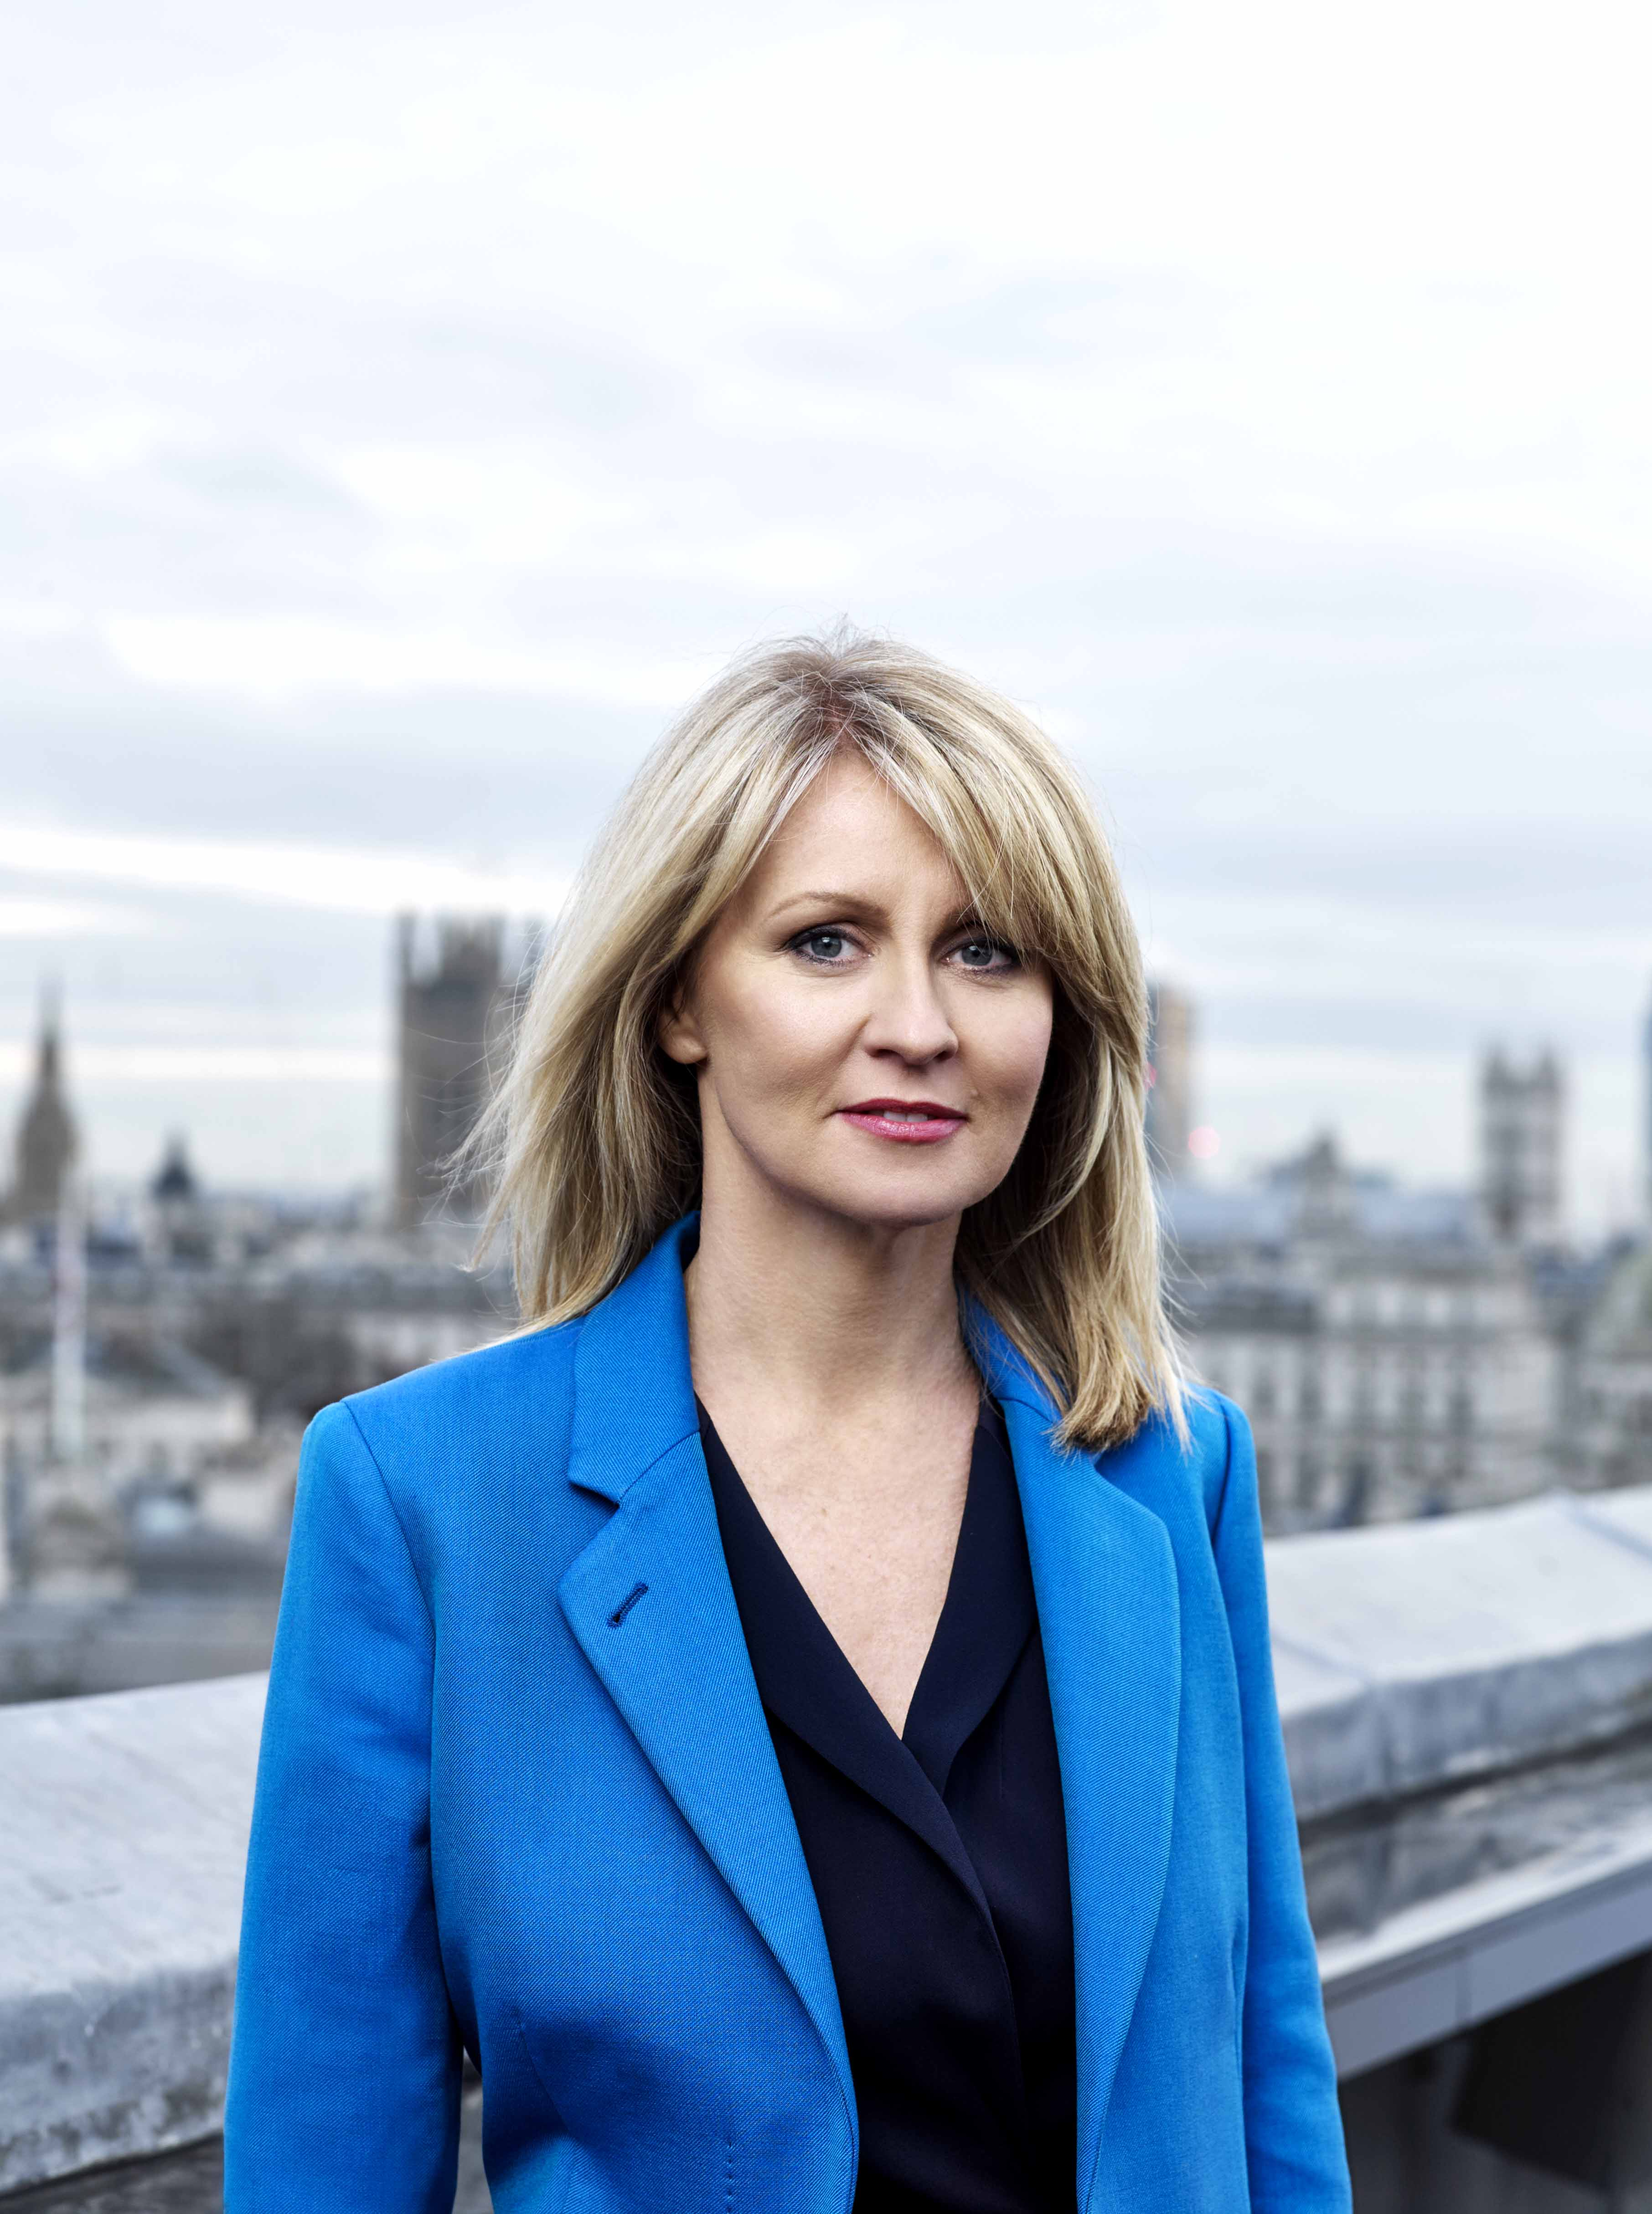 esther mcvey - photo #35